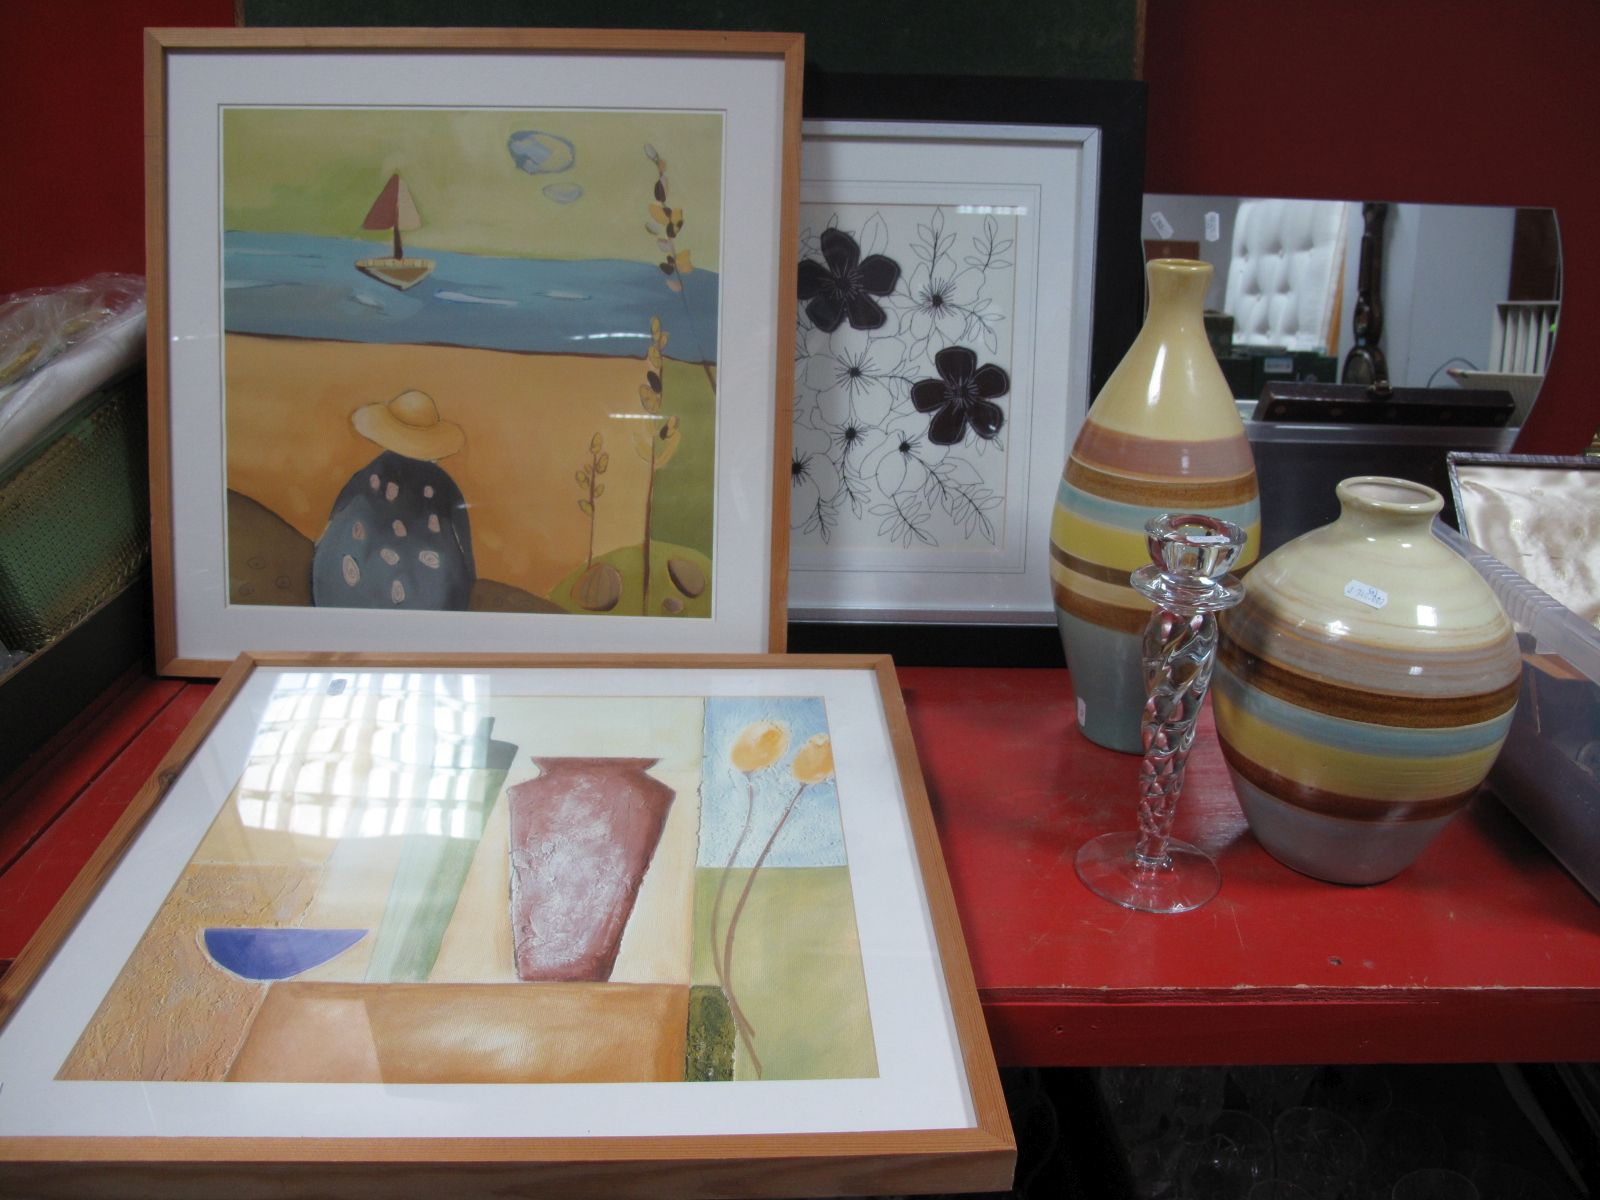 Lot 718 - A Vono Folding Card Table, four wave mirrors, two framed prints, two decorative vases, Kosta Boda